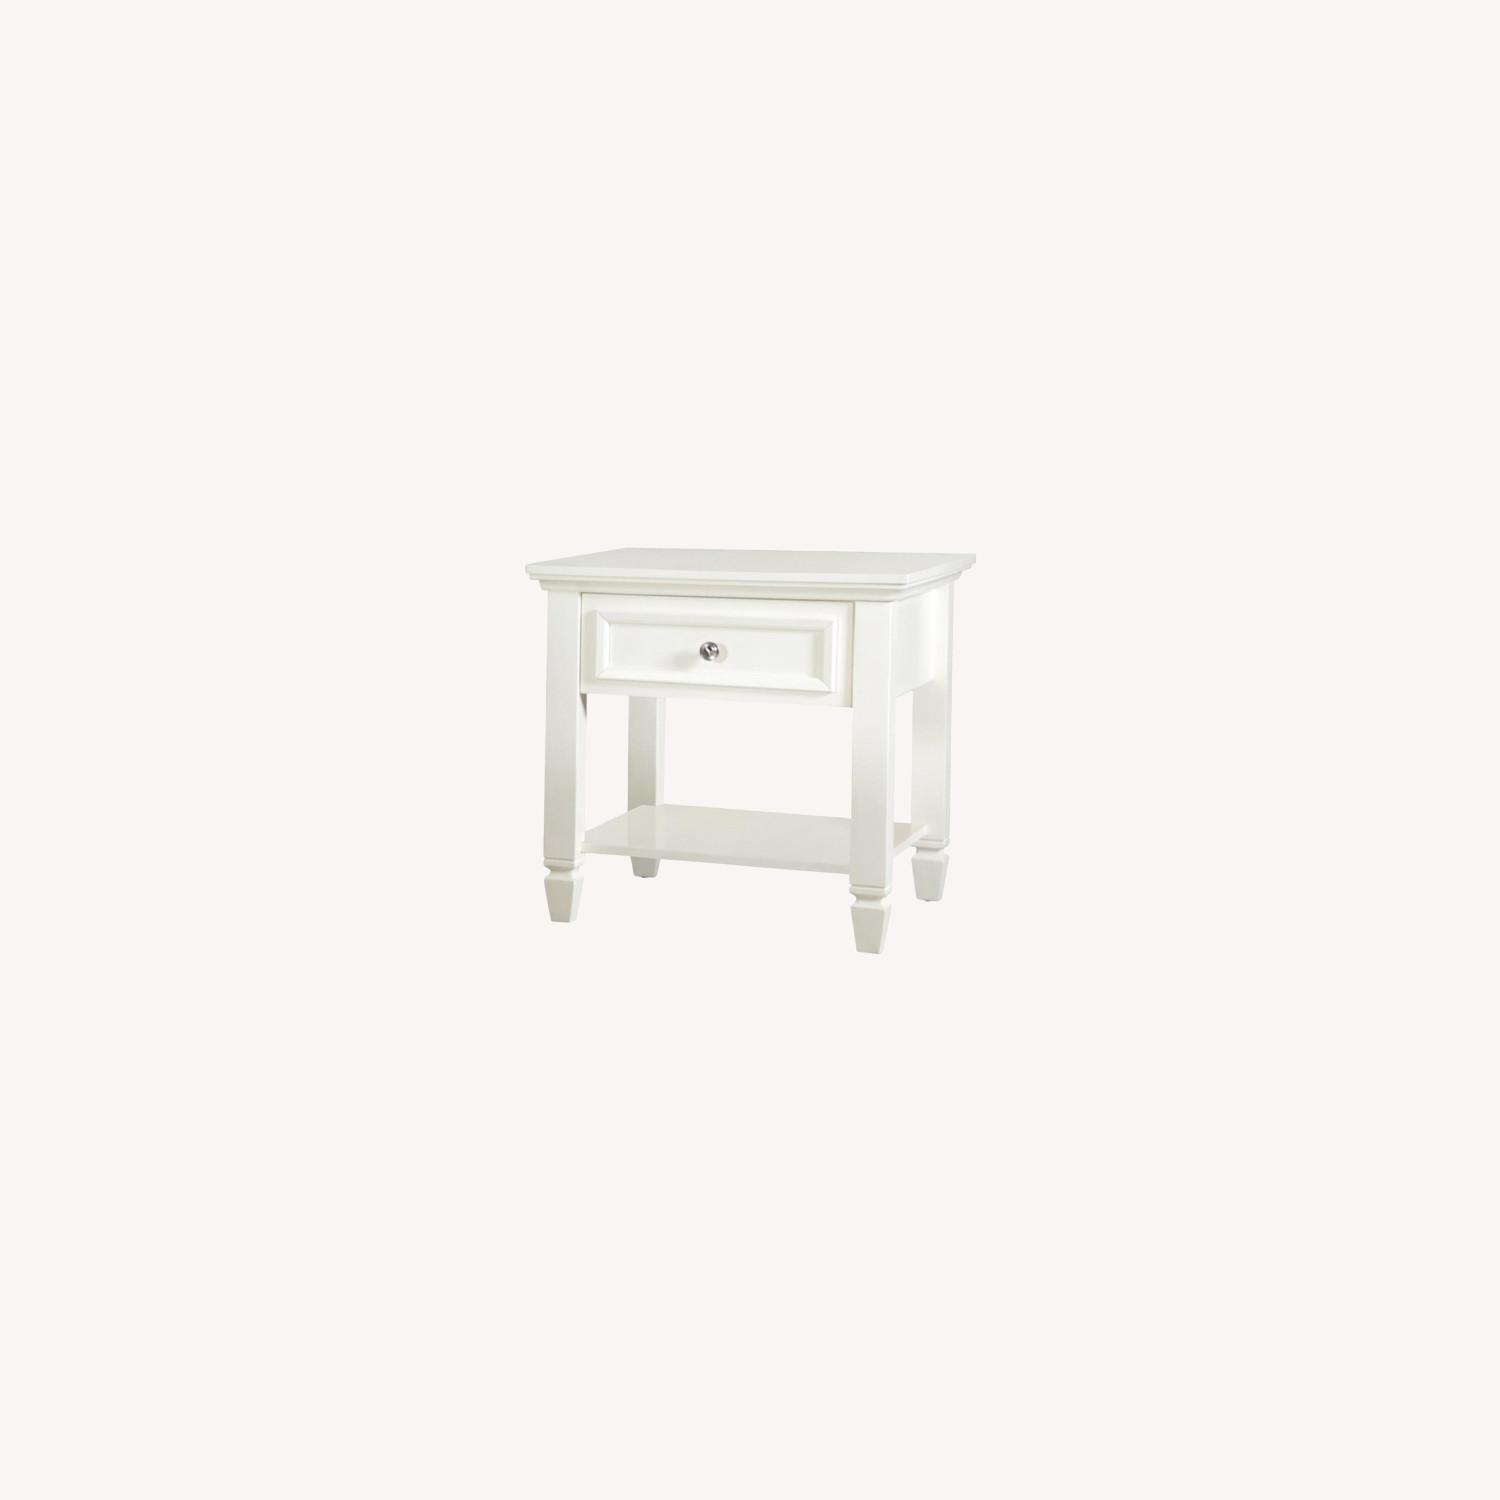 End Table In Brushed Nickel Finish W/ Lower Shelf - image-4